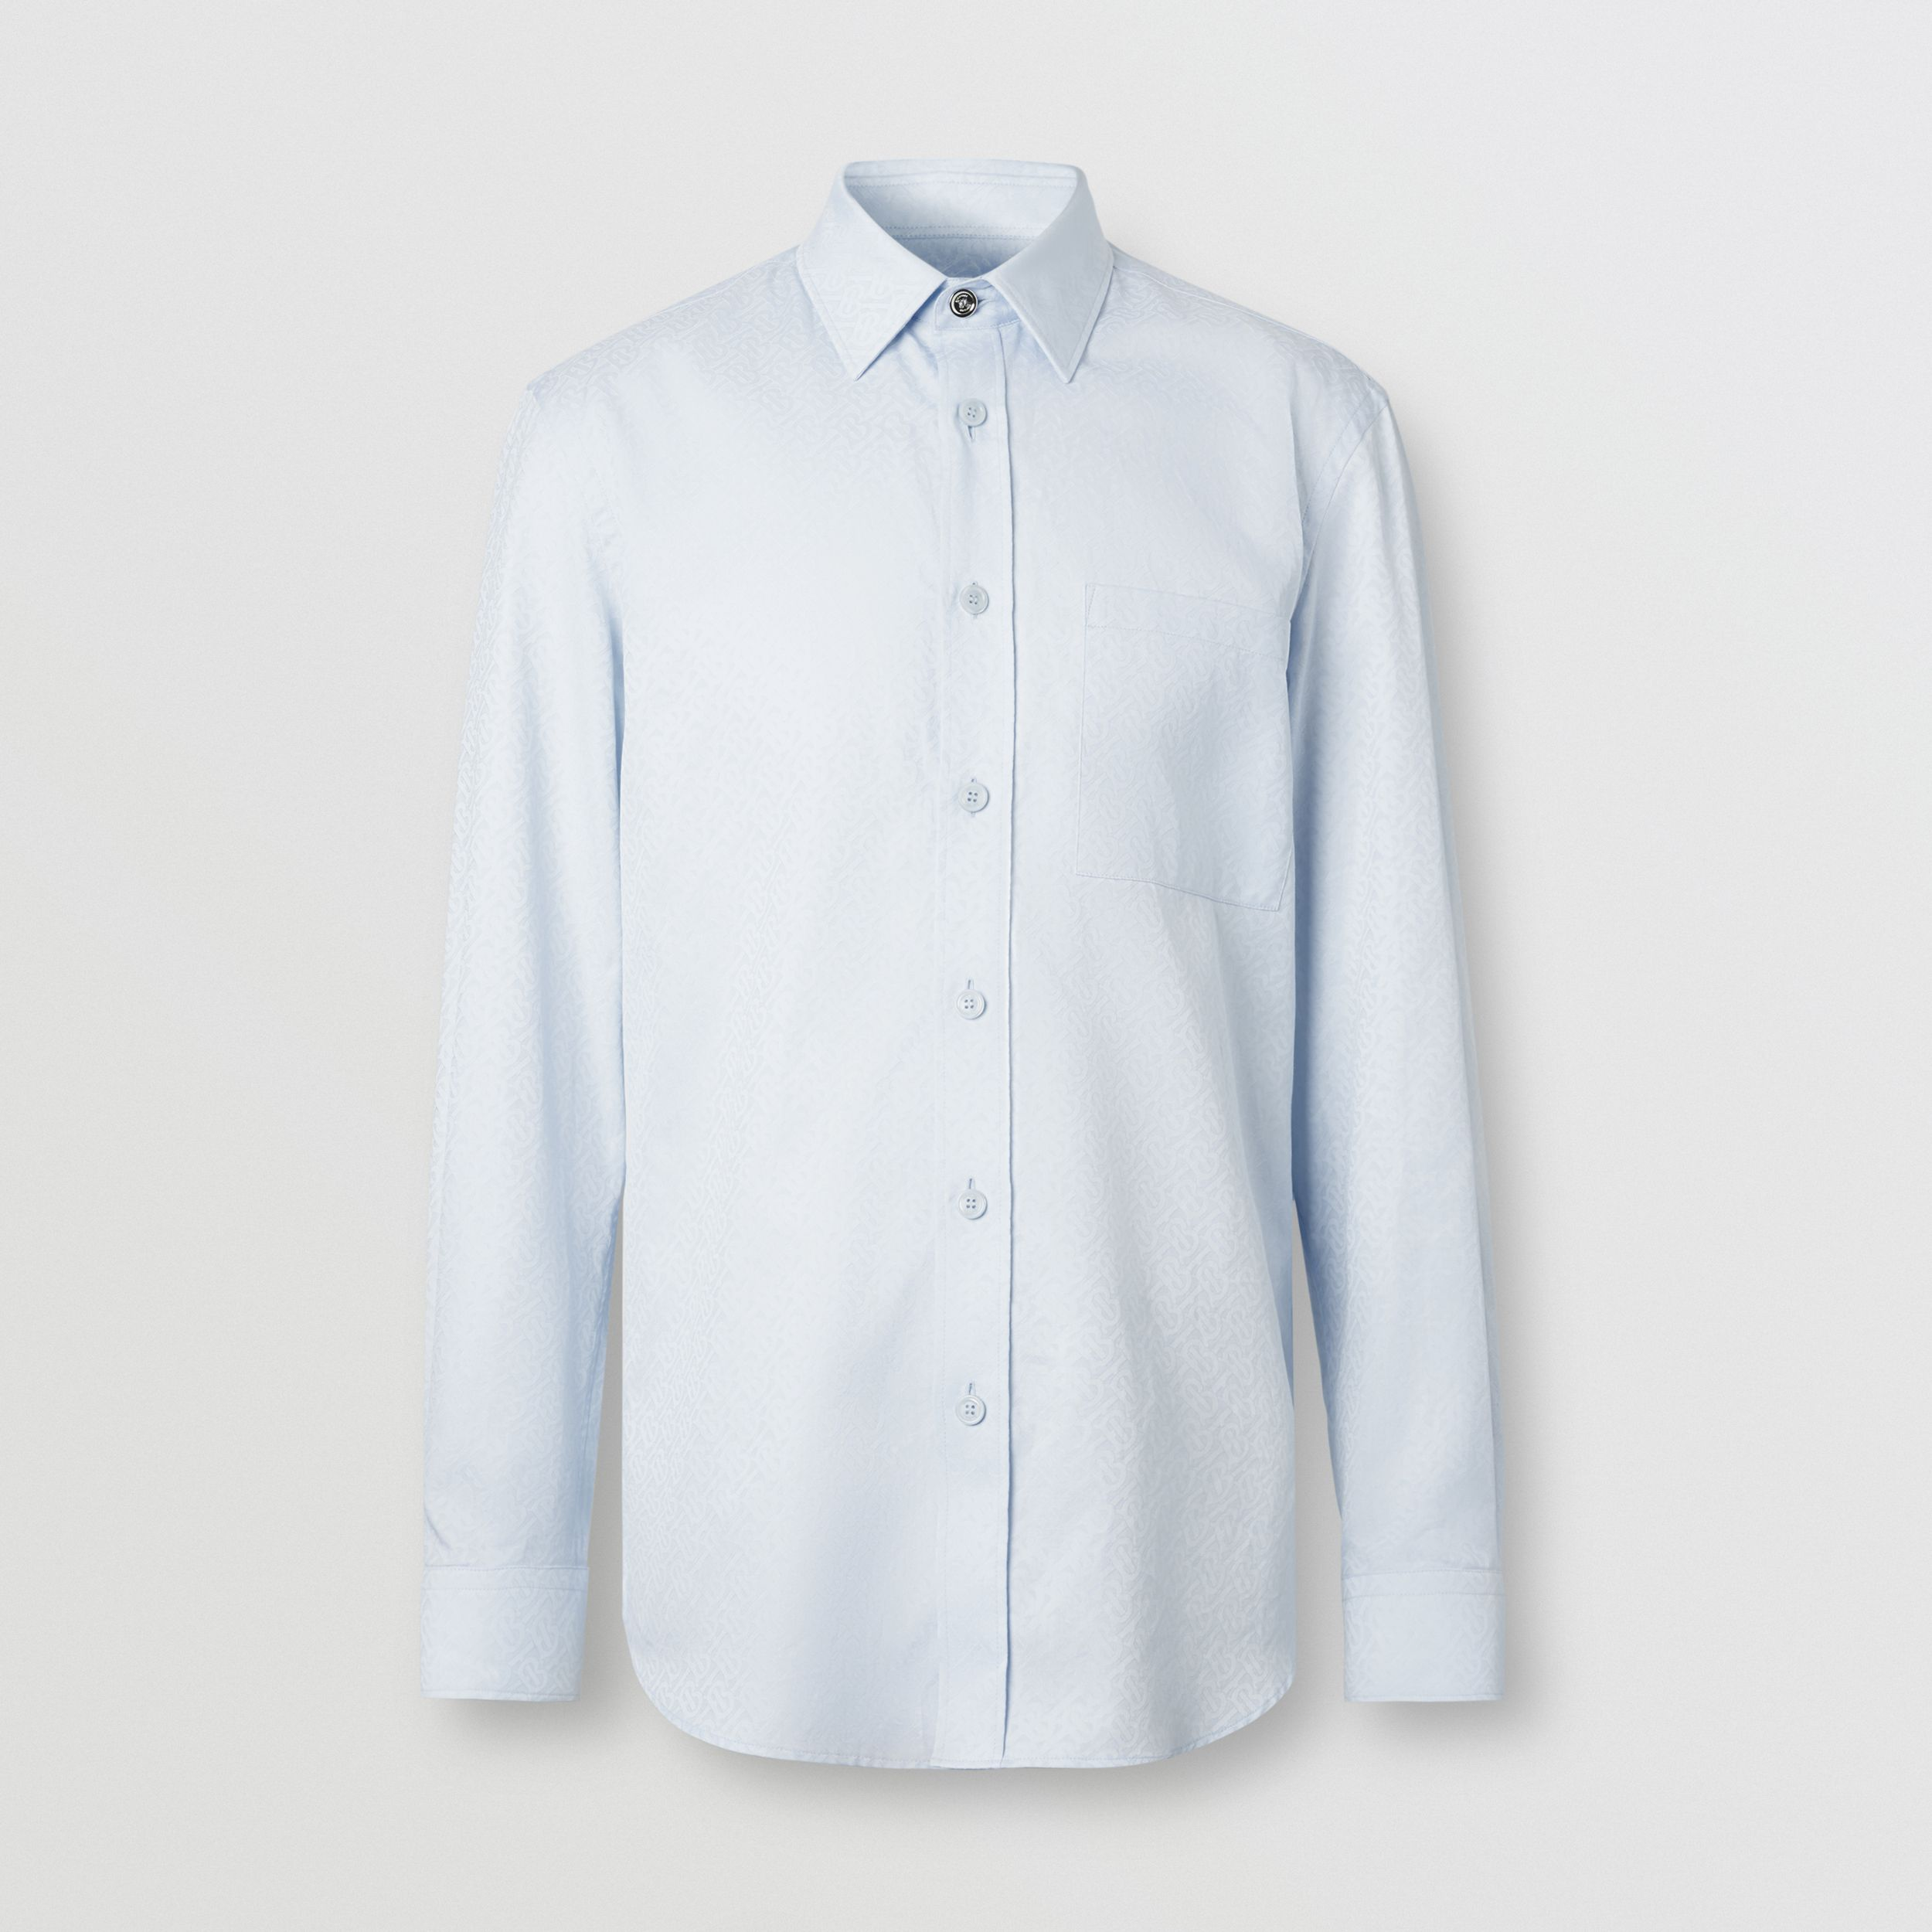 Slim Fit Monogram Cotton Jacquard Shirt - Men | Burberry - 4